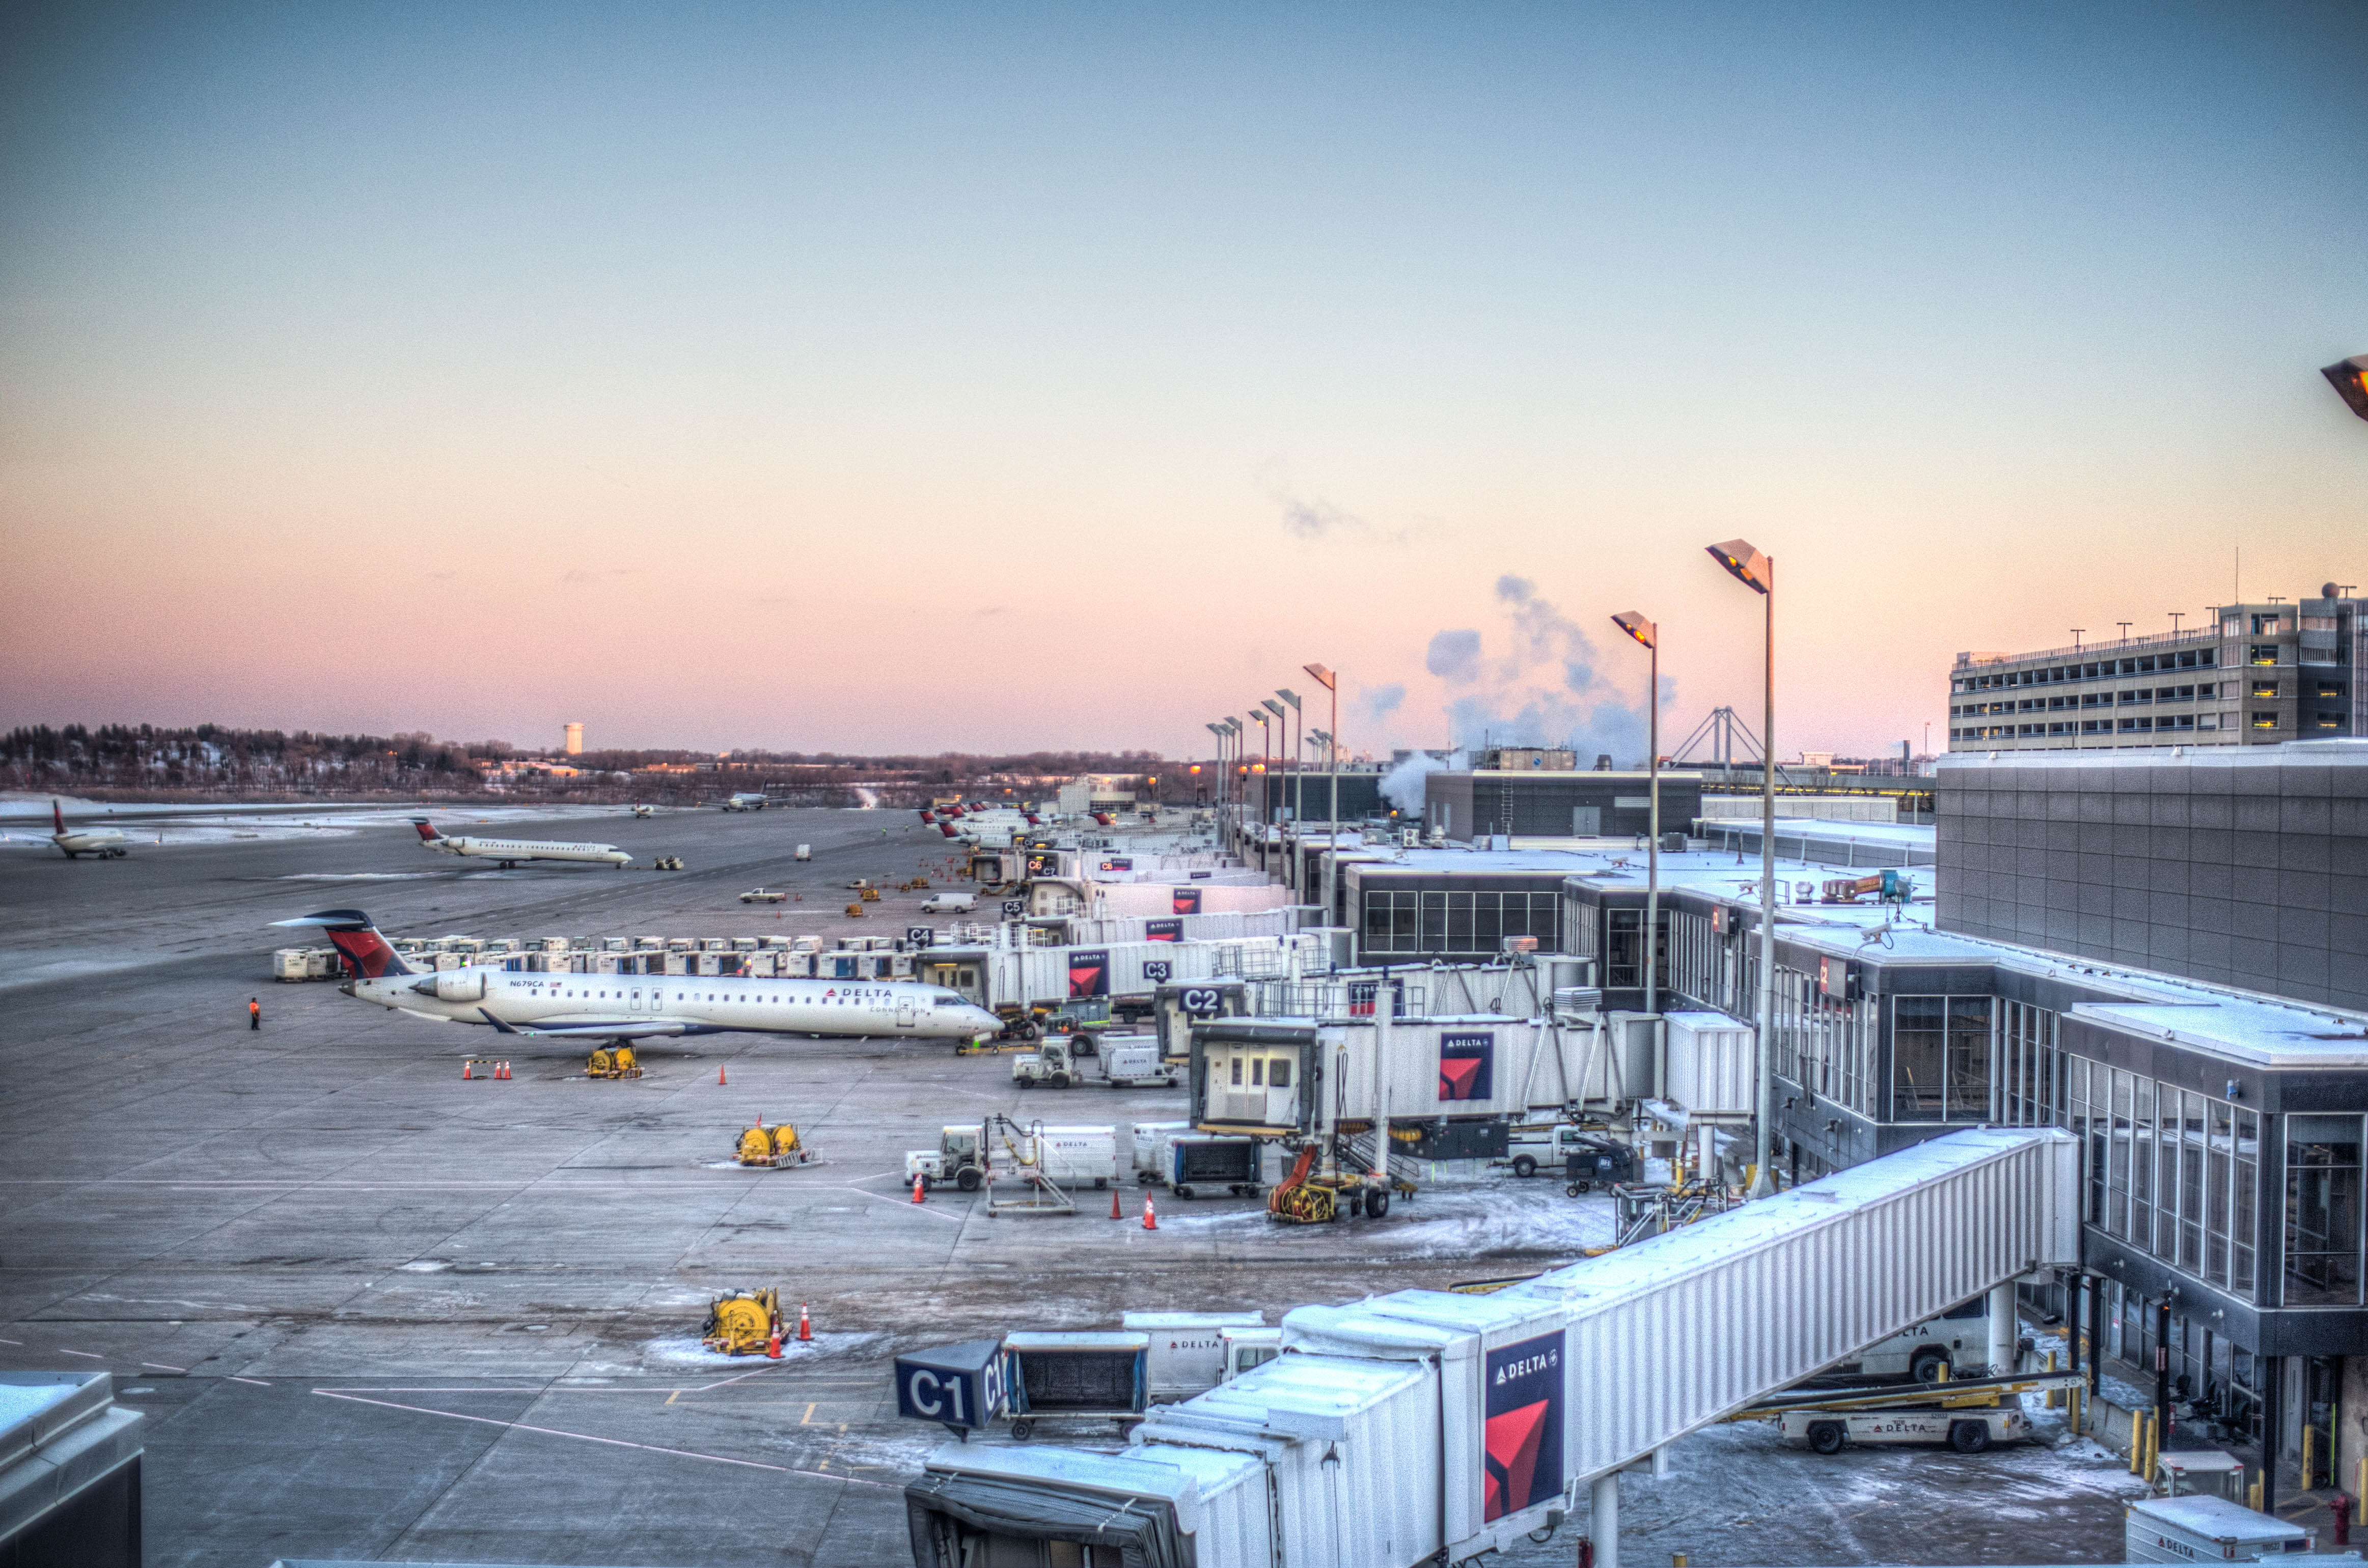 File:MSP Airport - View from the observation deck near